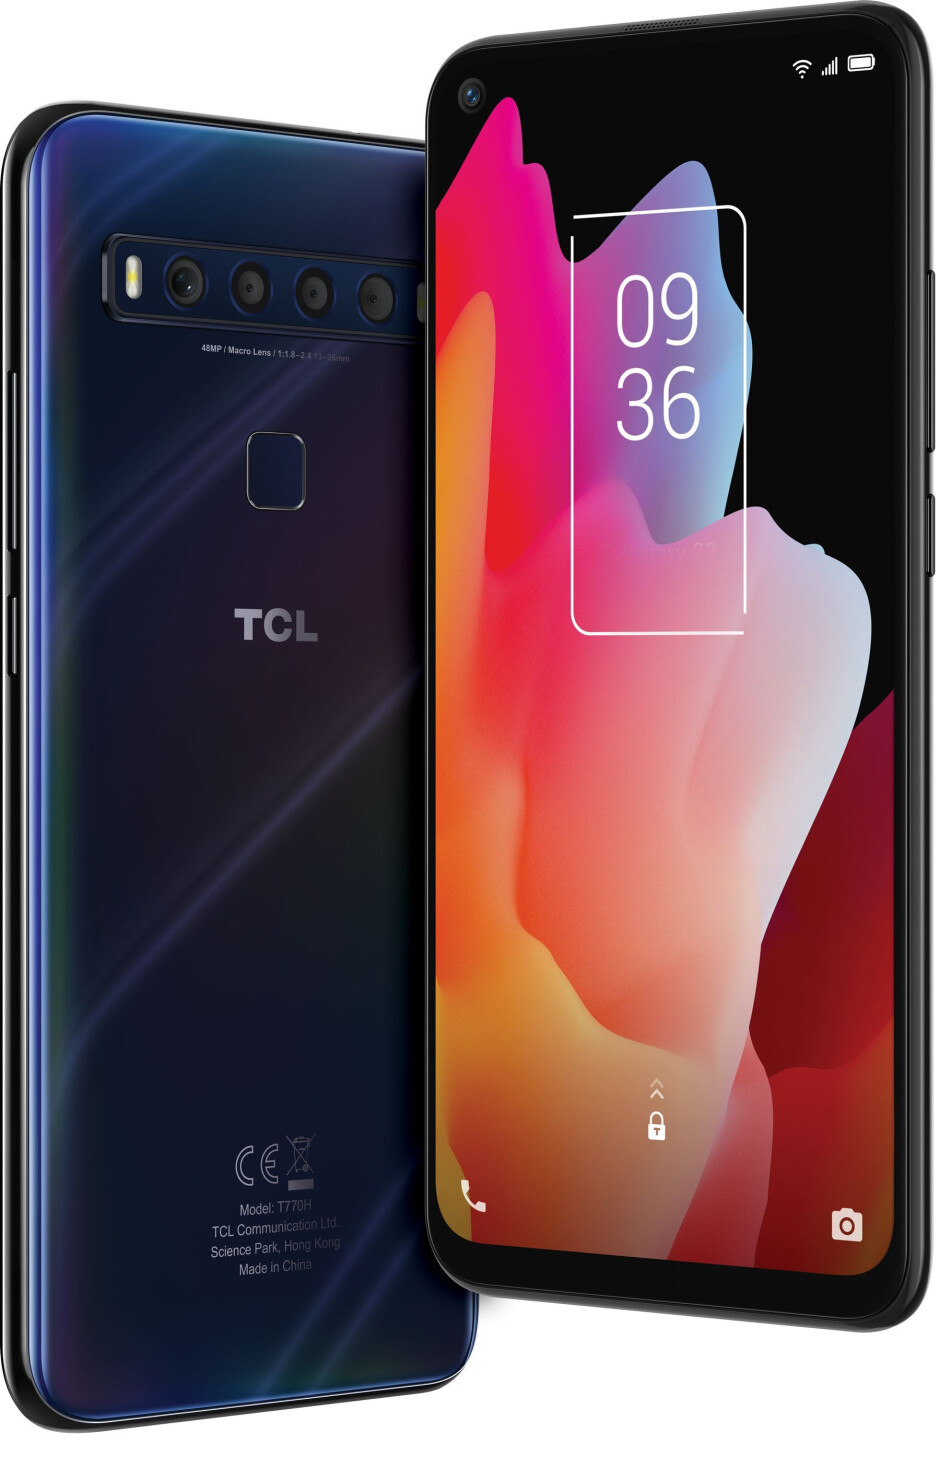 TCL 10L - TCL's new phones are very affordable and are coming to the US very soon